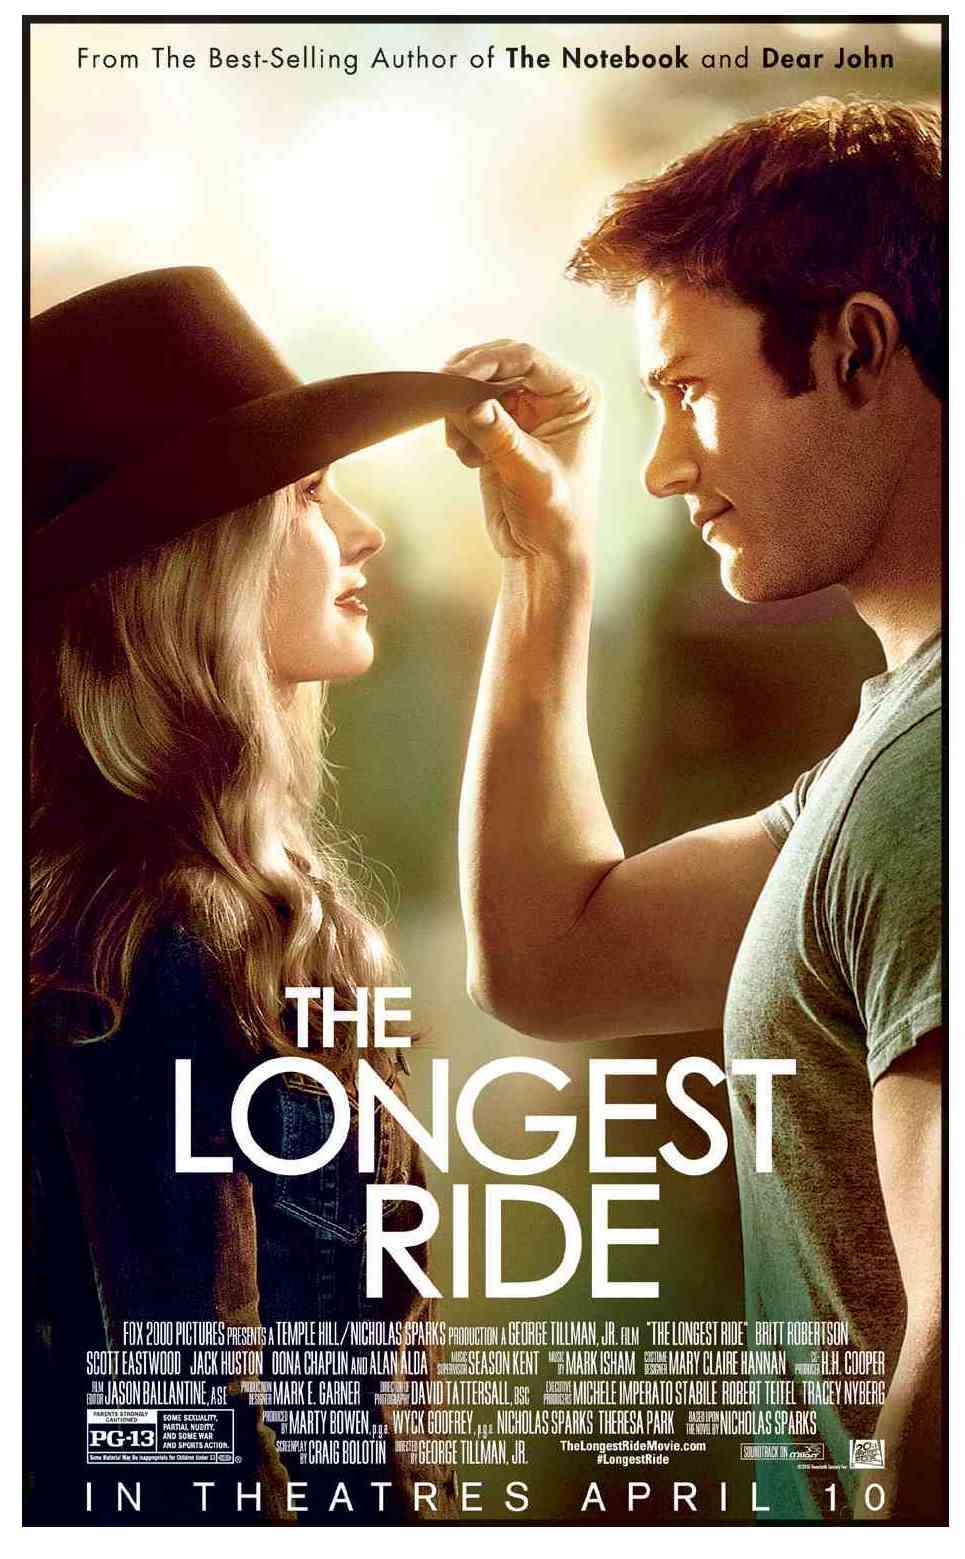 the longest ride midwest theater